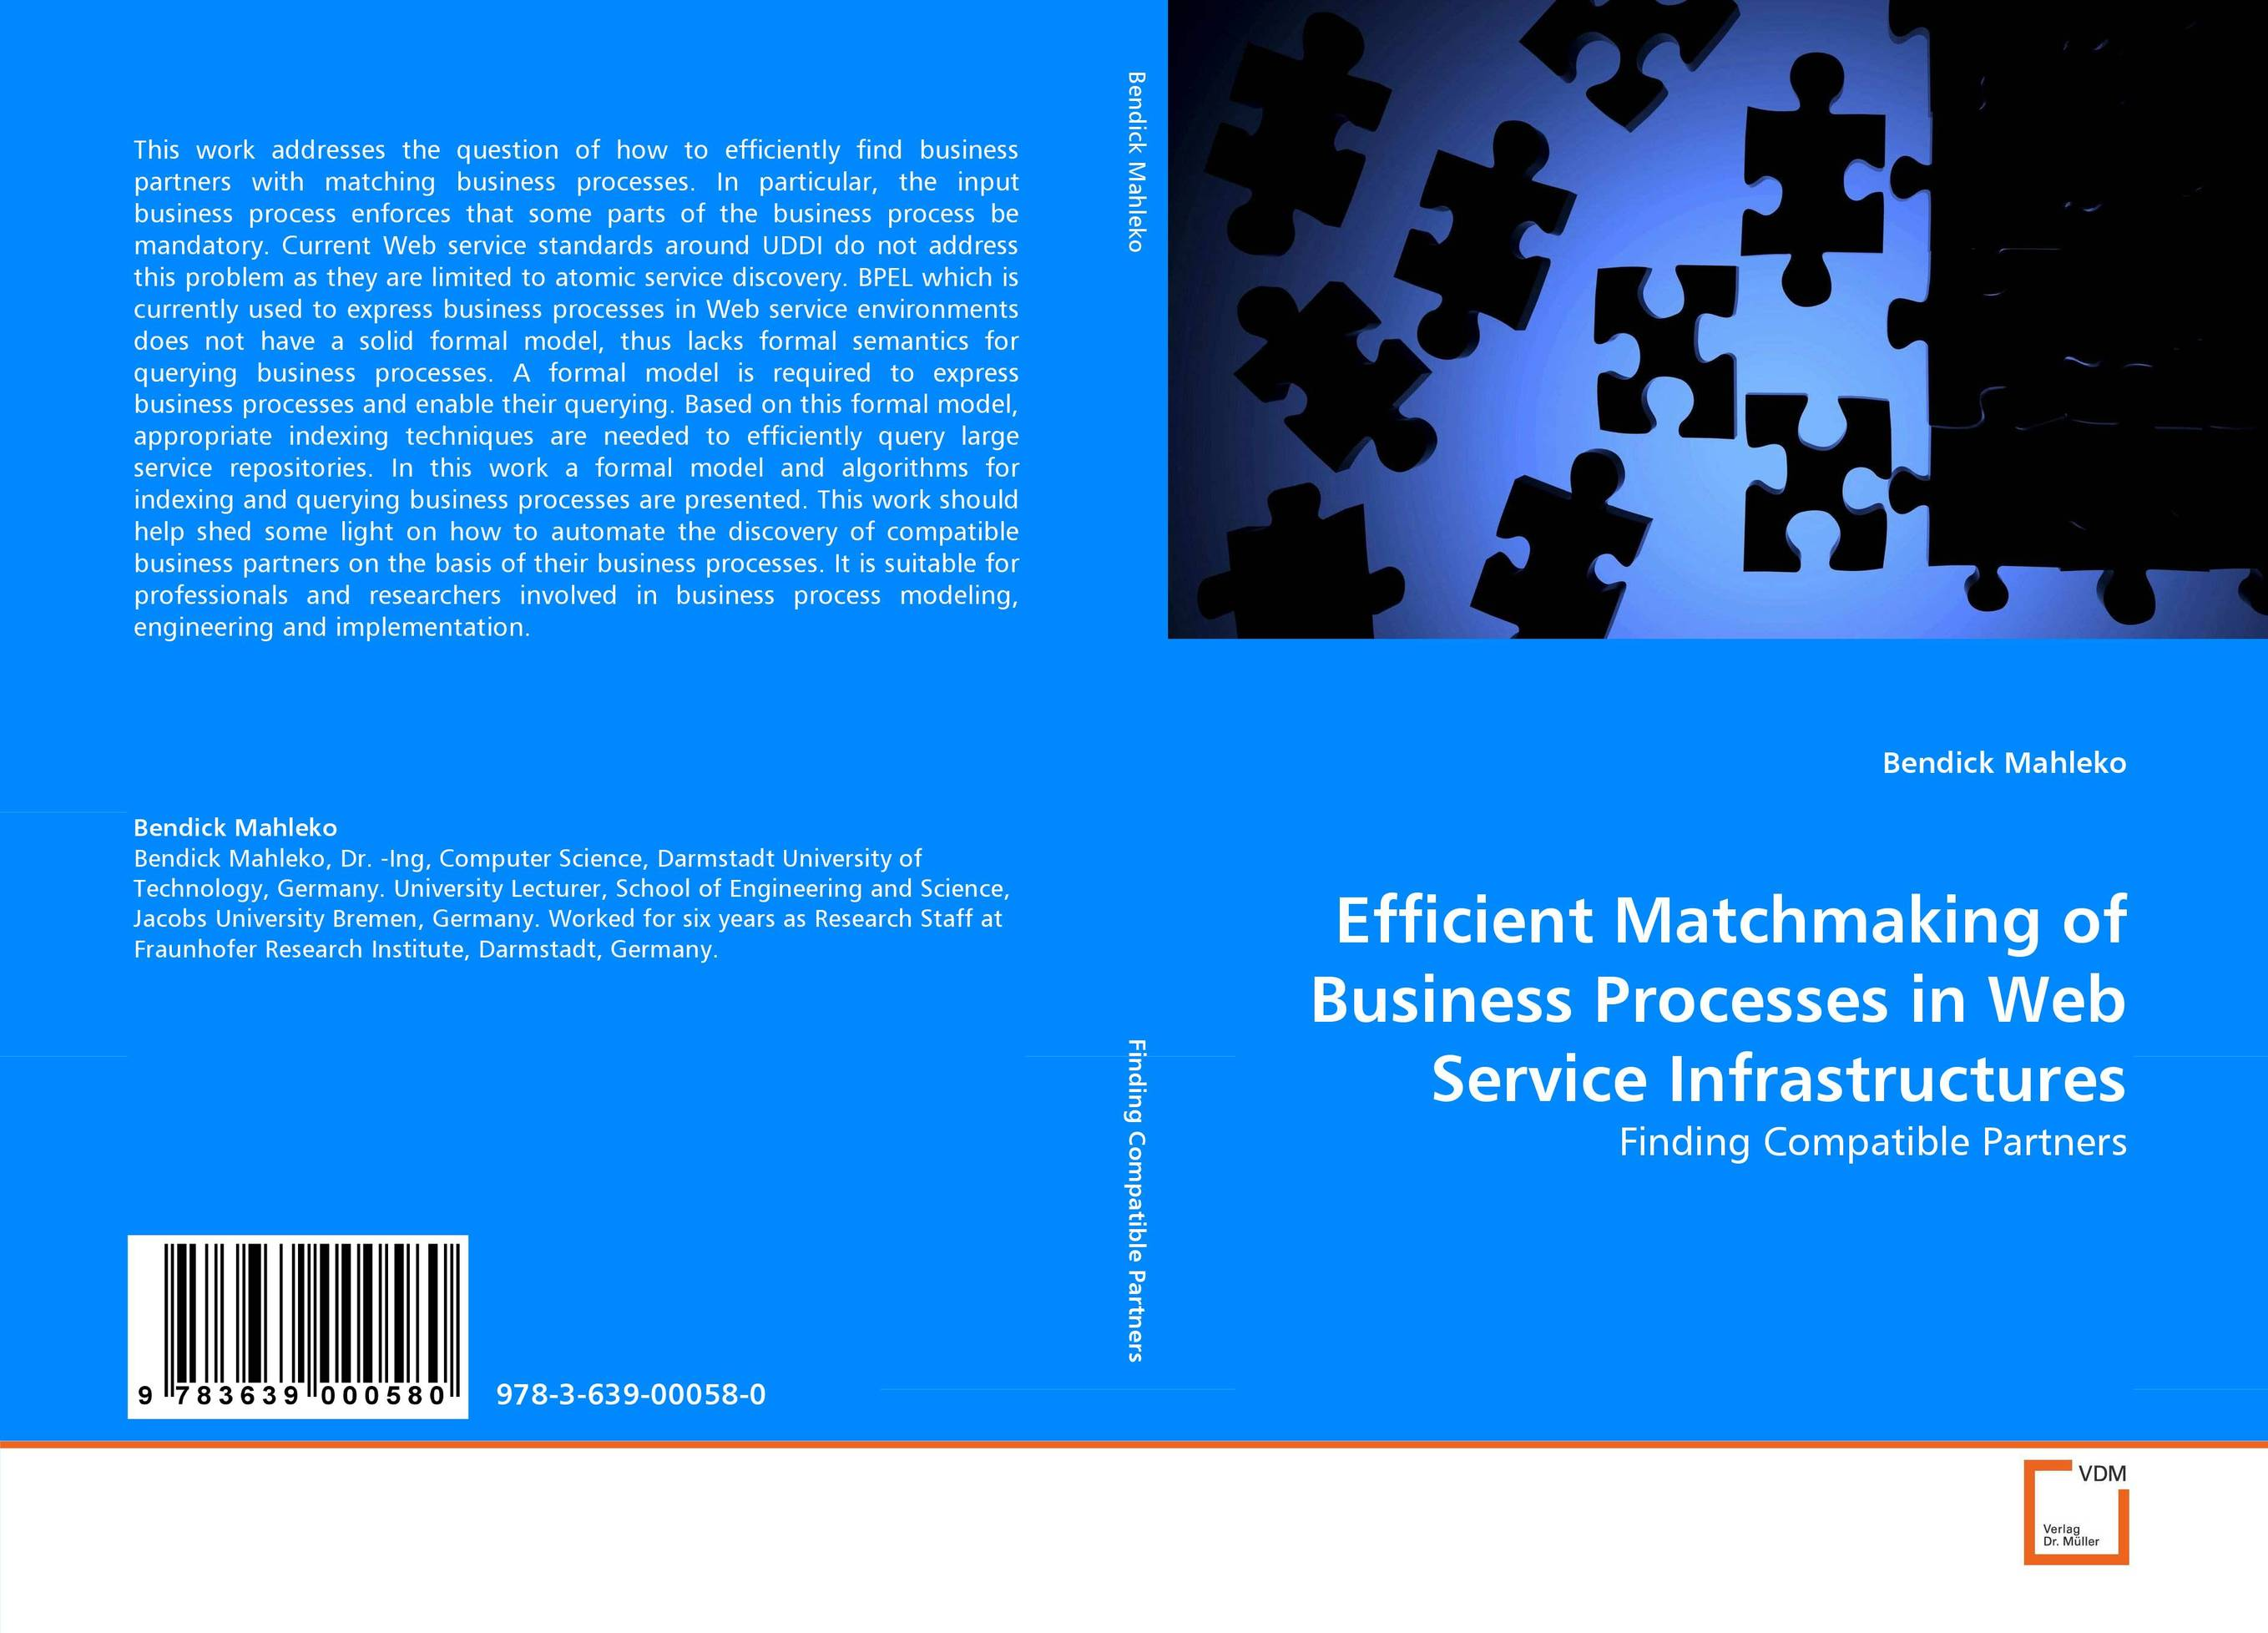 Efficient Matchmaking of Business Processes in Web Service Infrastructures overview of web based business